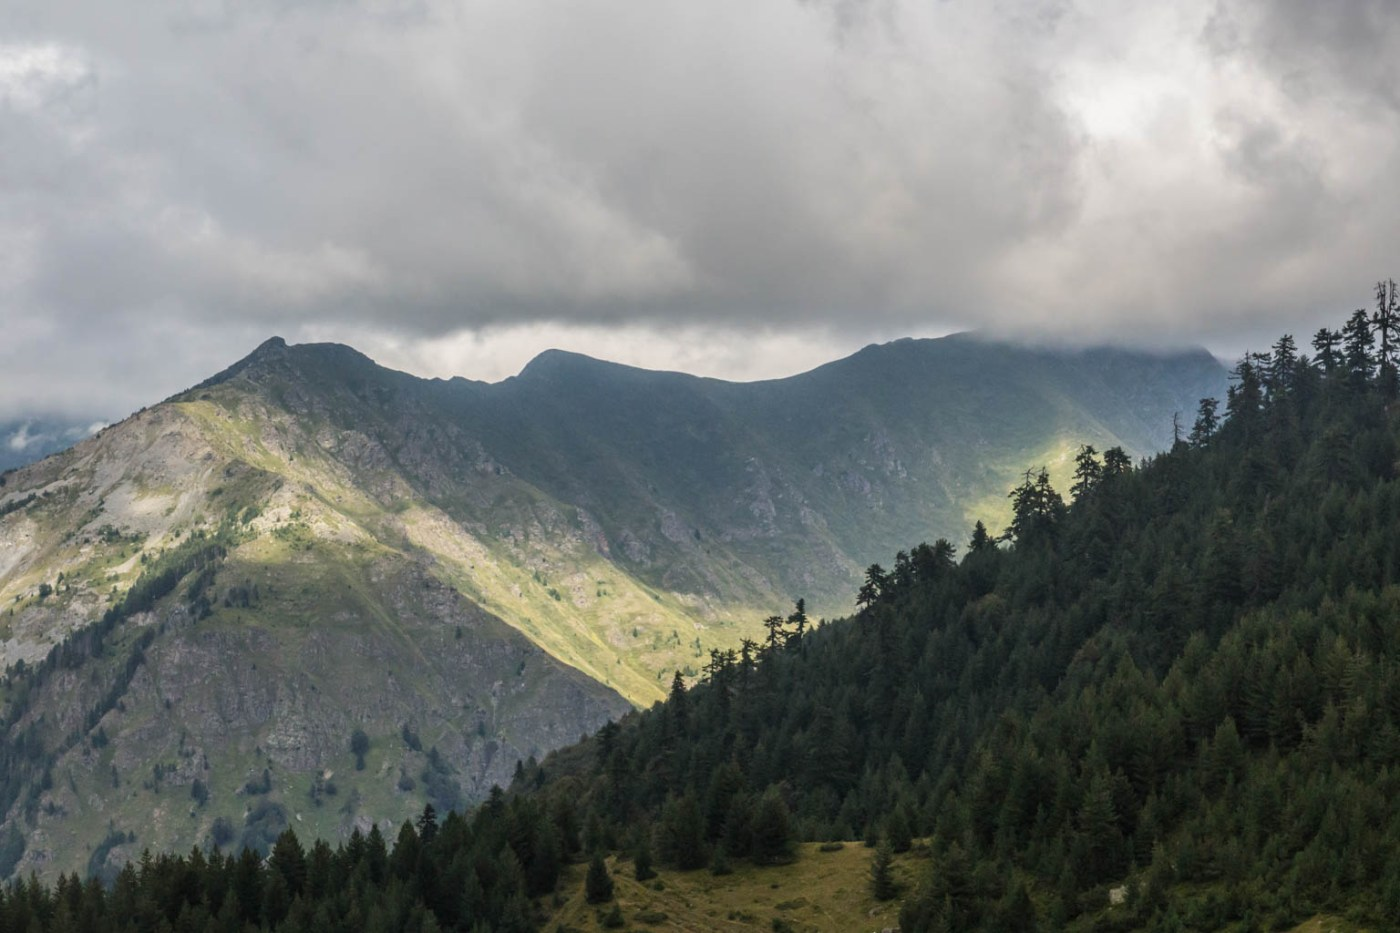 Albania, On the way from Gashit.jpg - © European Wilderness Society CC BY-NC-ND 4.0